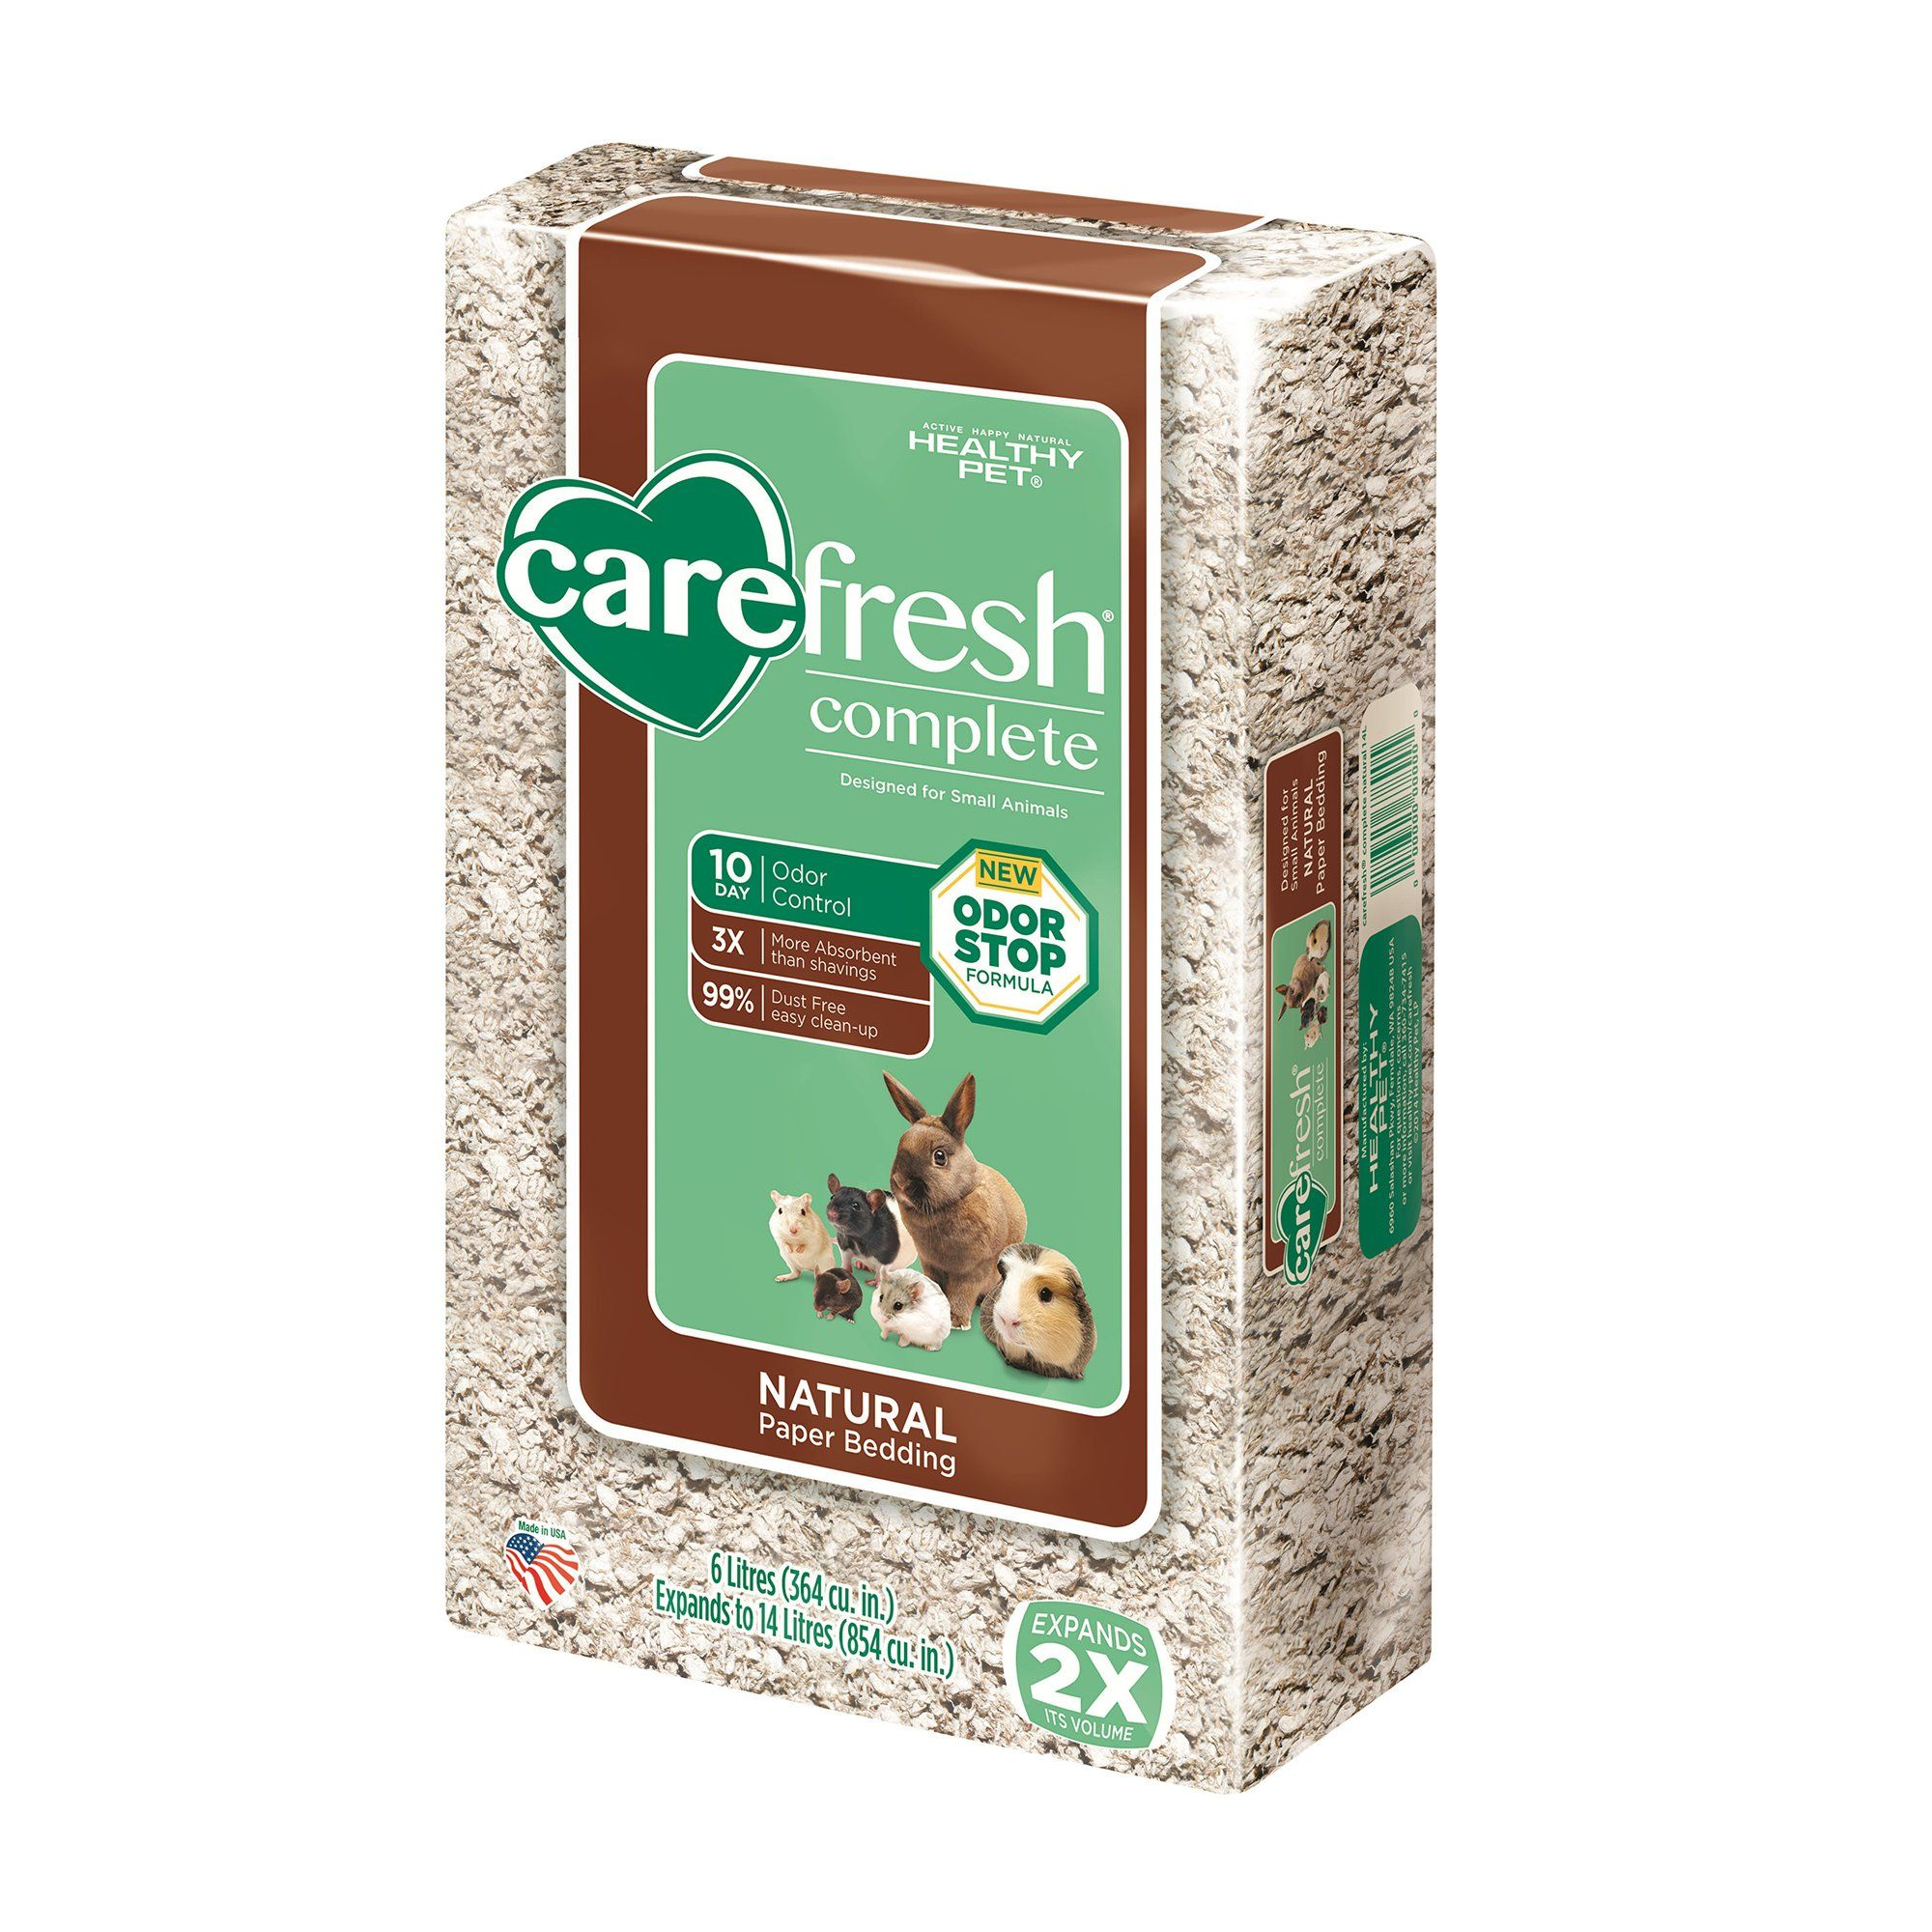 Carefresh Natural Small Pet Bedding, 60 liters Small